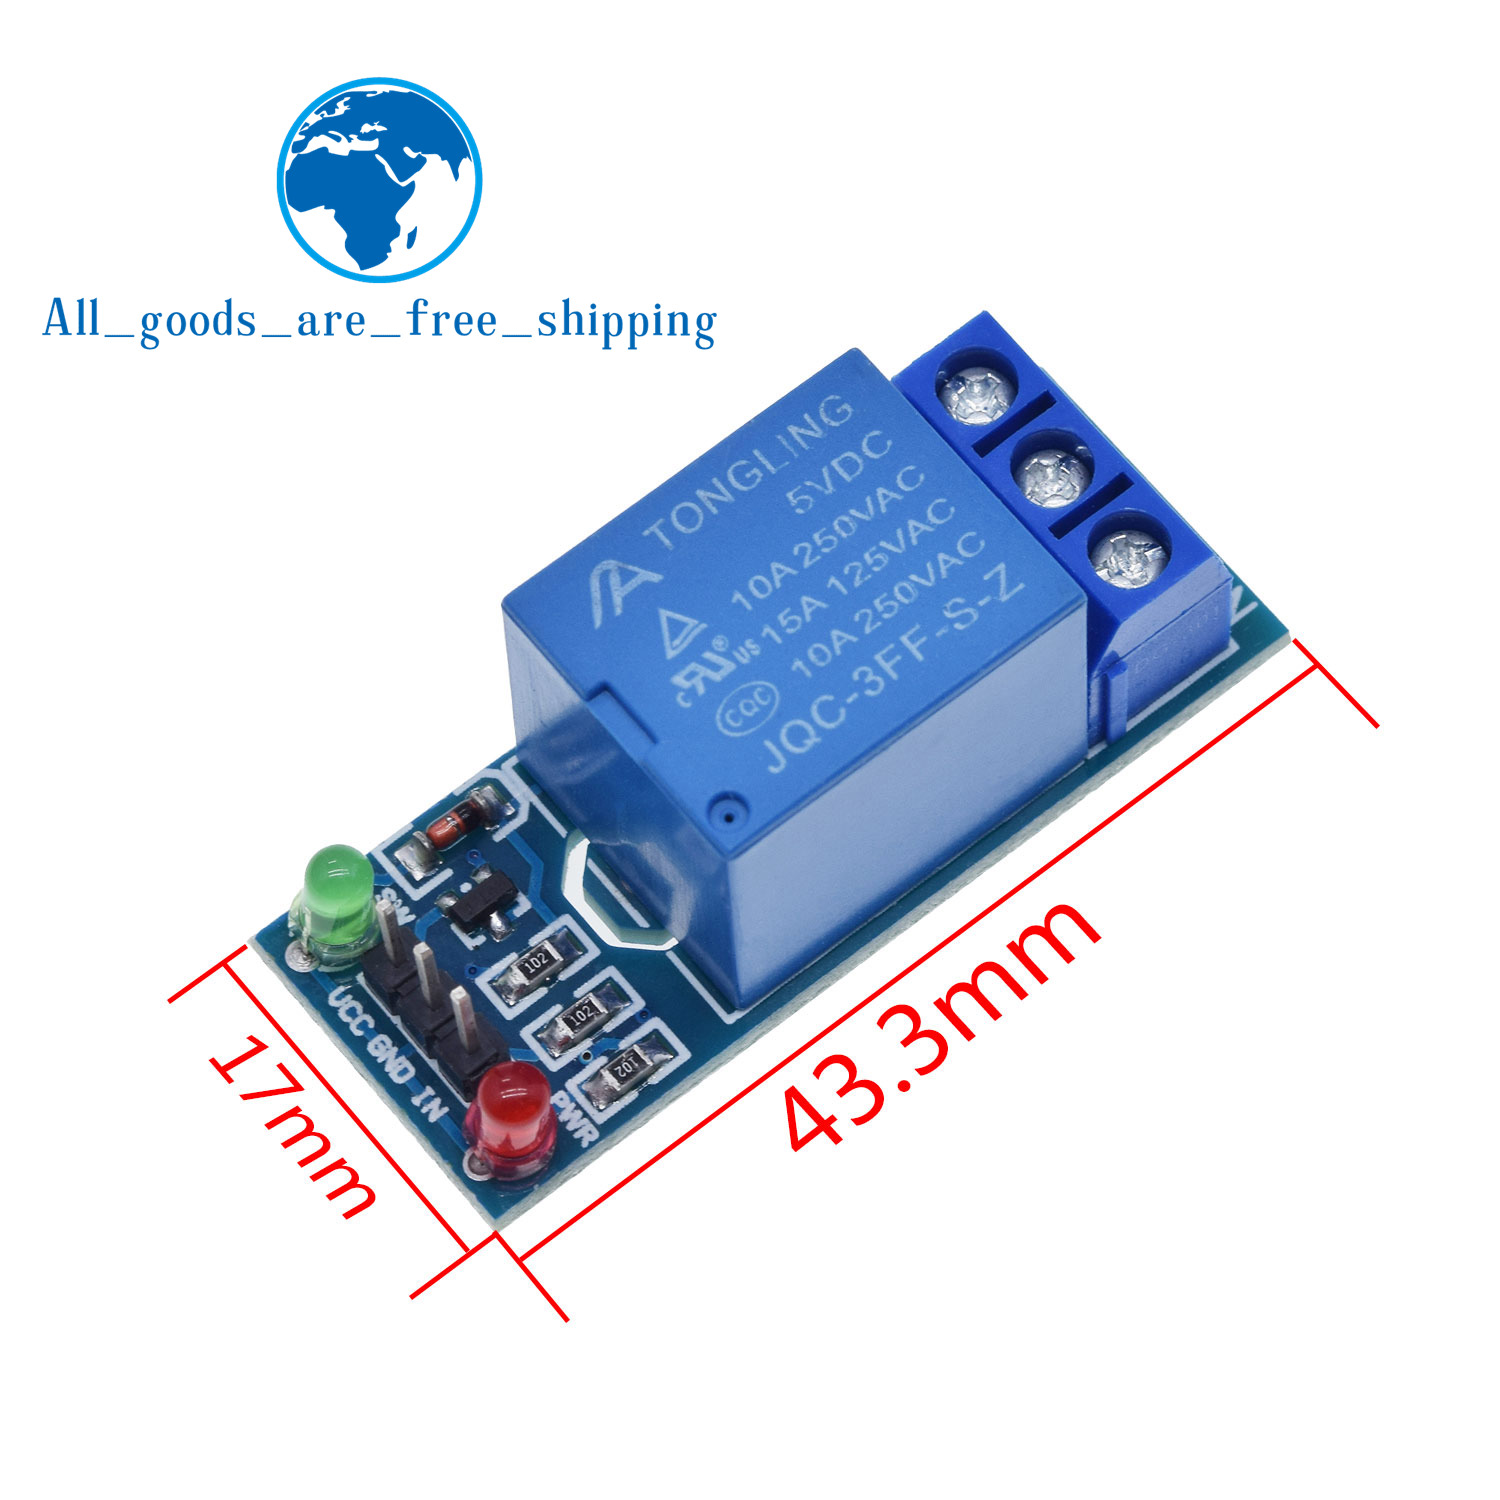 TZT 1pcs 5v 12v 1 2 4 6 8 channel relay module with optocoupler. Relay Output 1 2 4 6 8 way relay module for arduino In stock 4